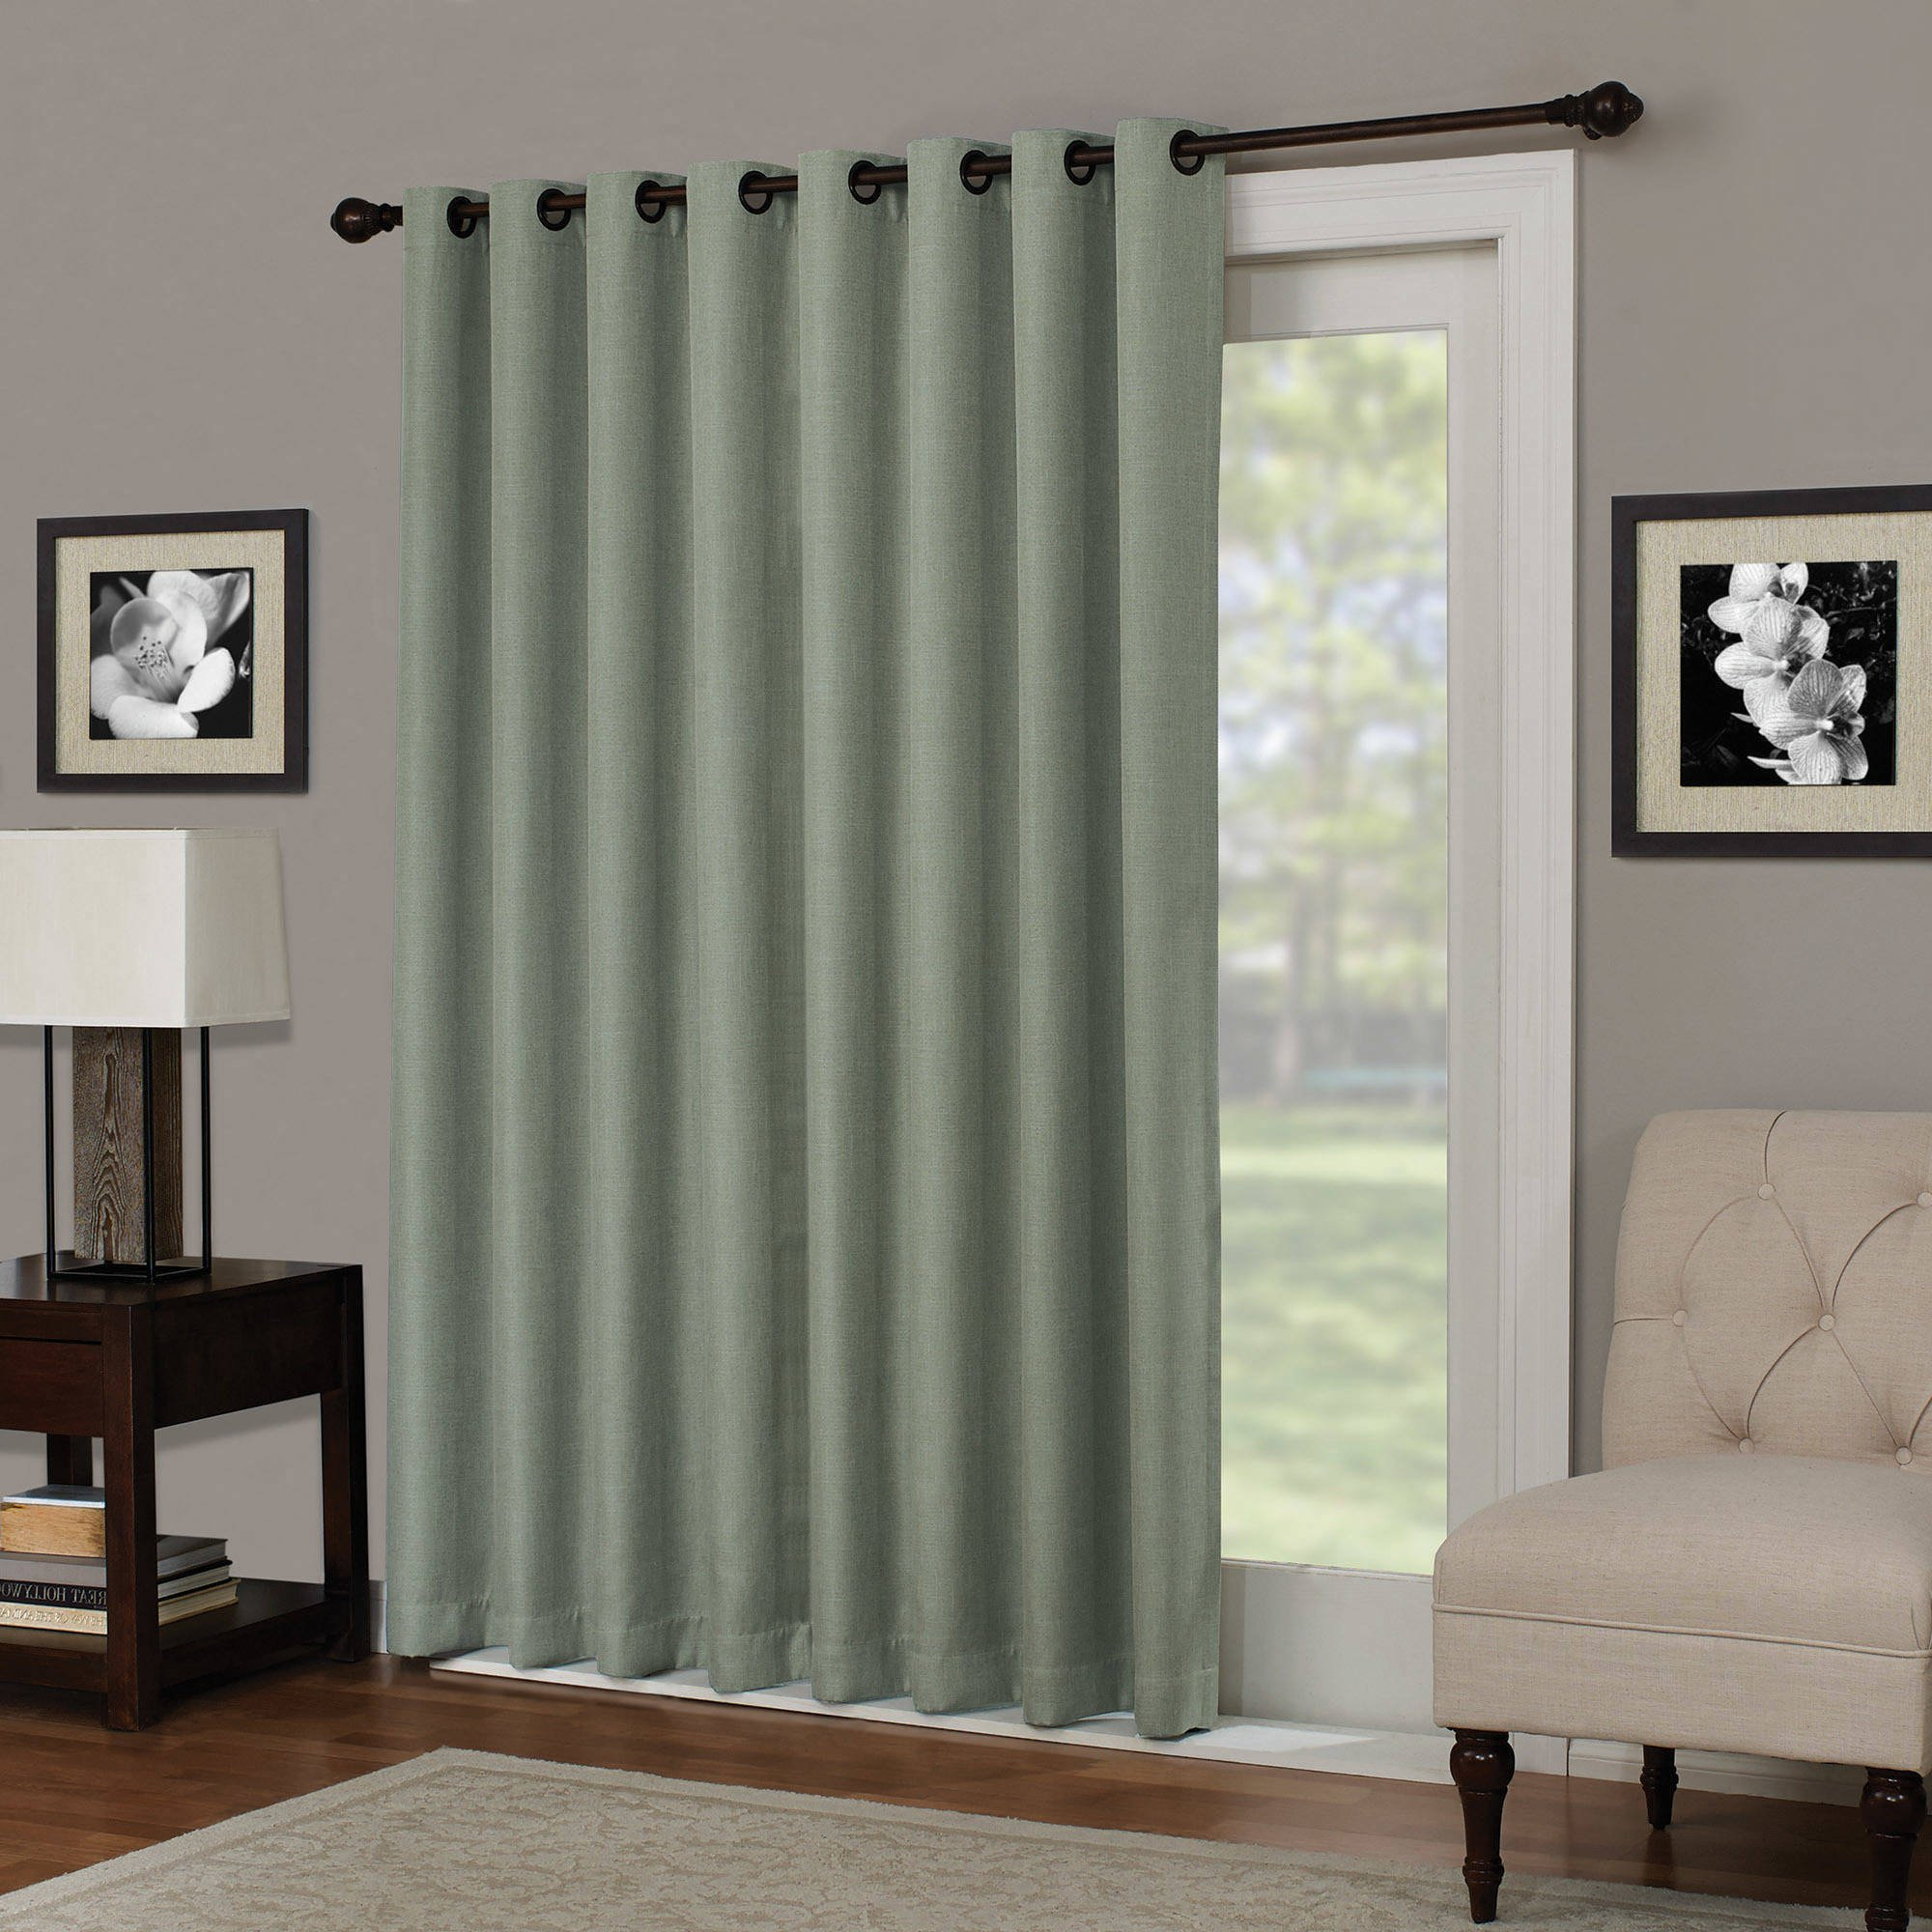 1 Piece 84 Inch Sage Solid Color Blackout Sliding Door Curtain, Green Sliding Patio Door Panel Window Treatment Single Panel, Modern Contemporary Curtains For Glass Door, Rod Pocket Polyester